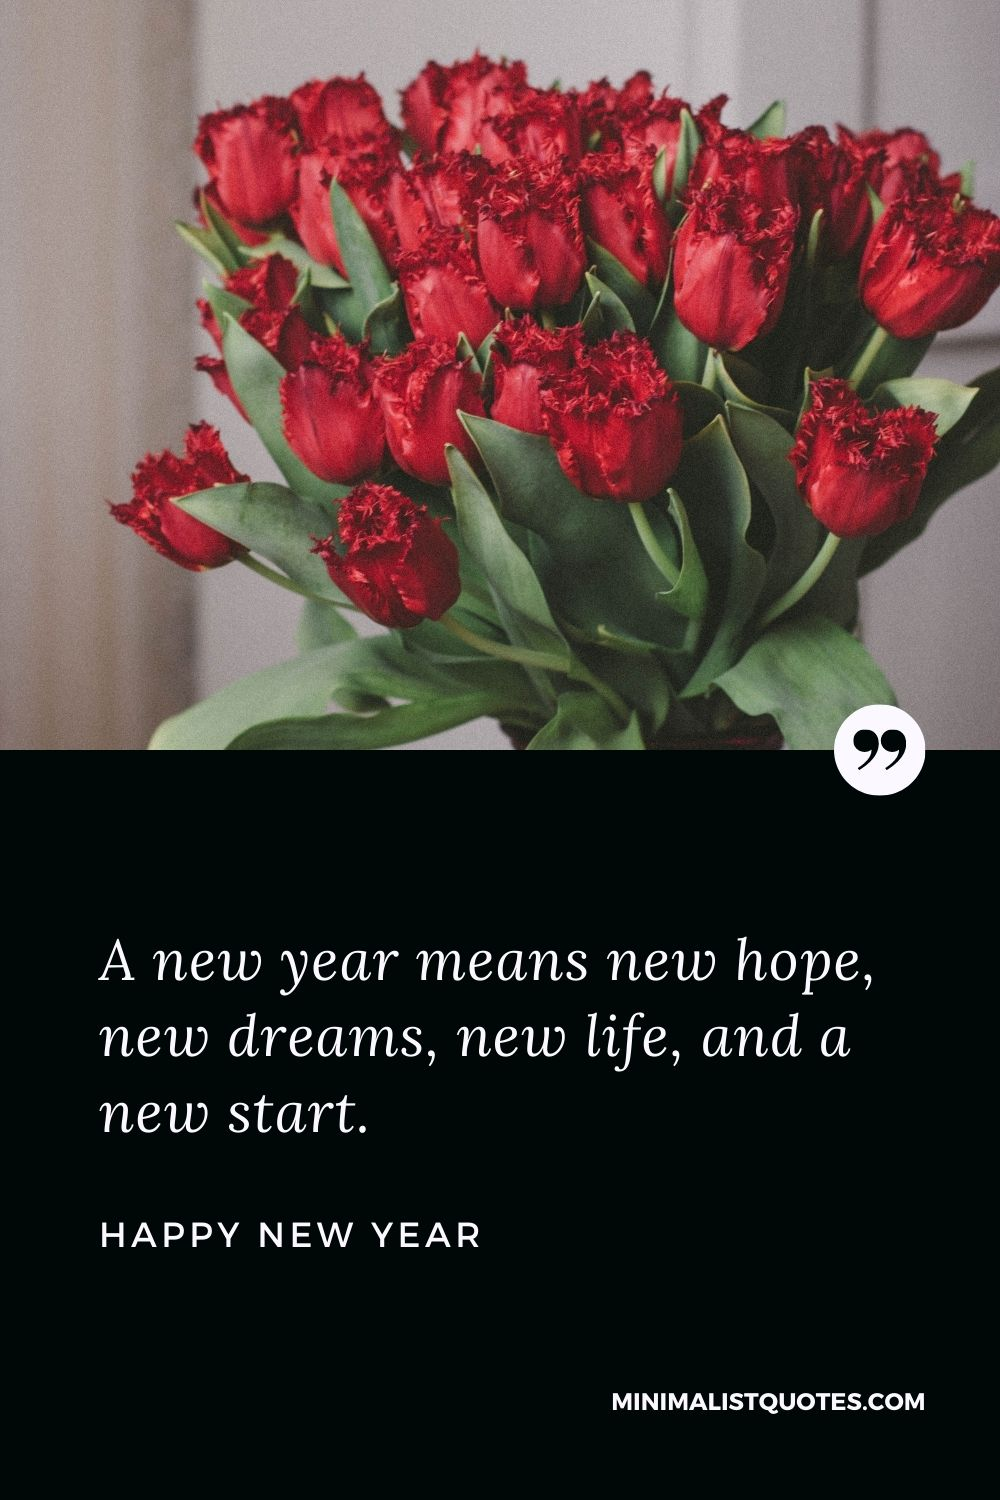 New Year Wish - A new year means new hope, new dreams, new life, and a new start.